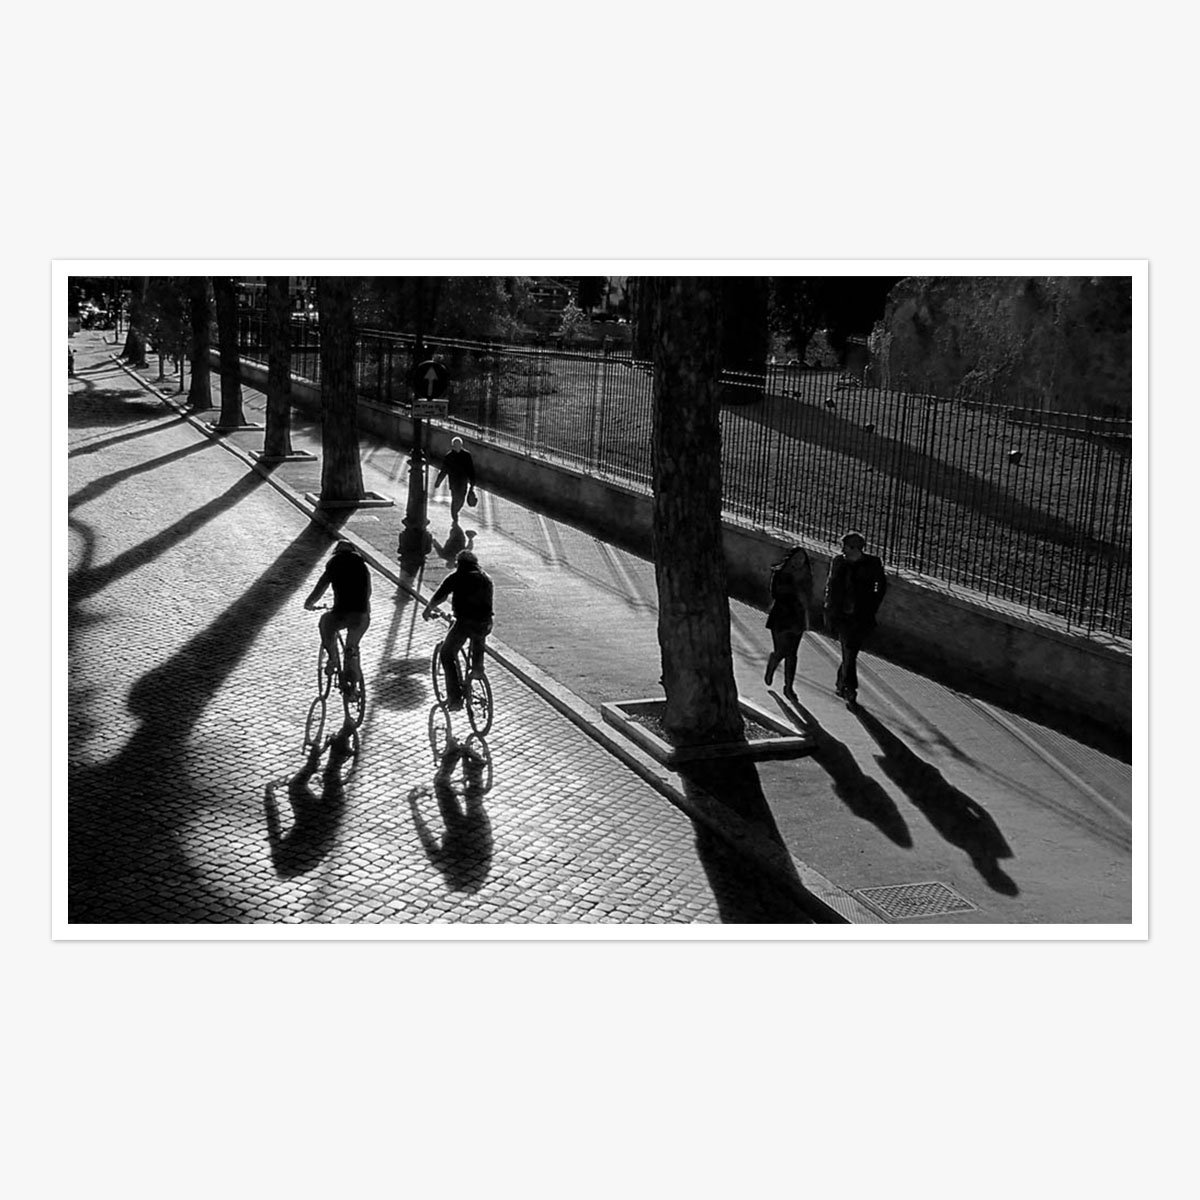 Rome Cyclists by Roger Taylor